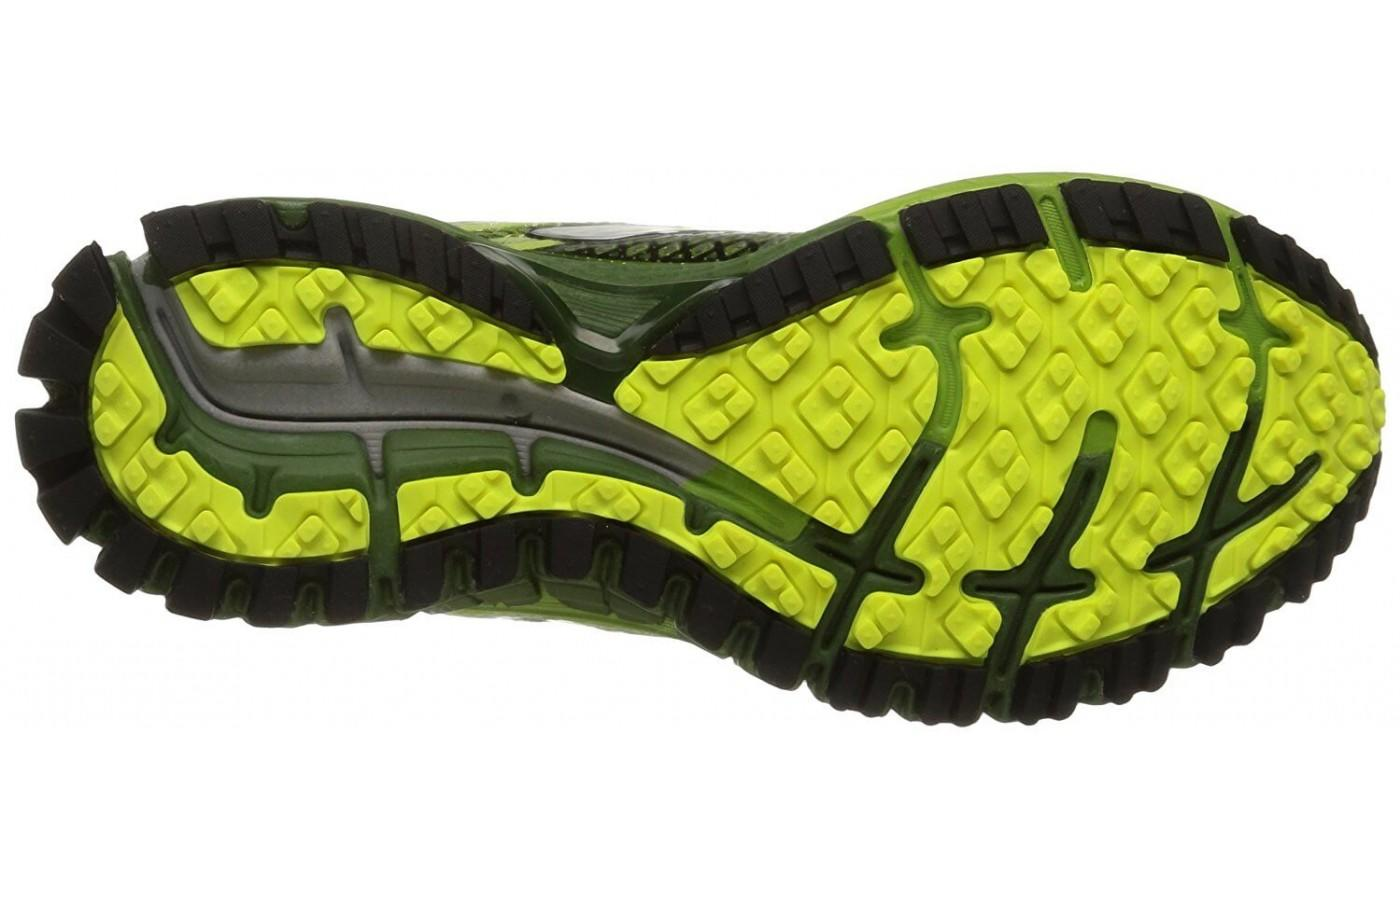 00b180aa9bb ... the Brooks Adrenaline ASR 12 has aggressive lugs for traction on the  toughest of trails ...